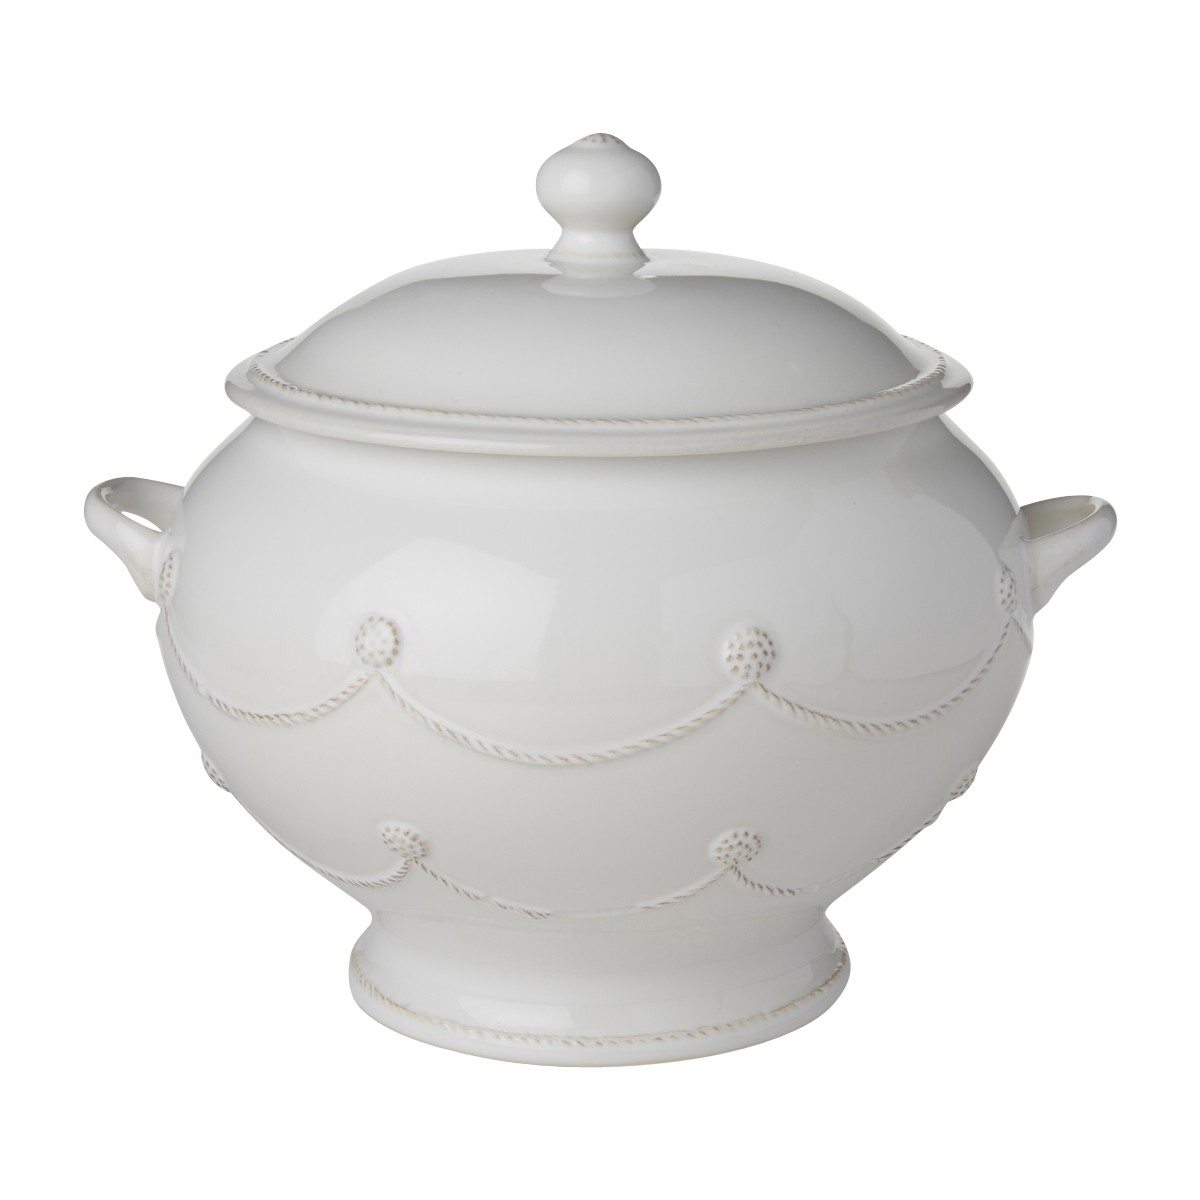 Berry & Thread Whitewash Soup Tureen - 1 available